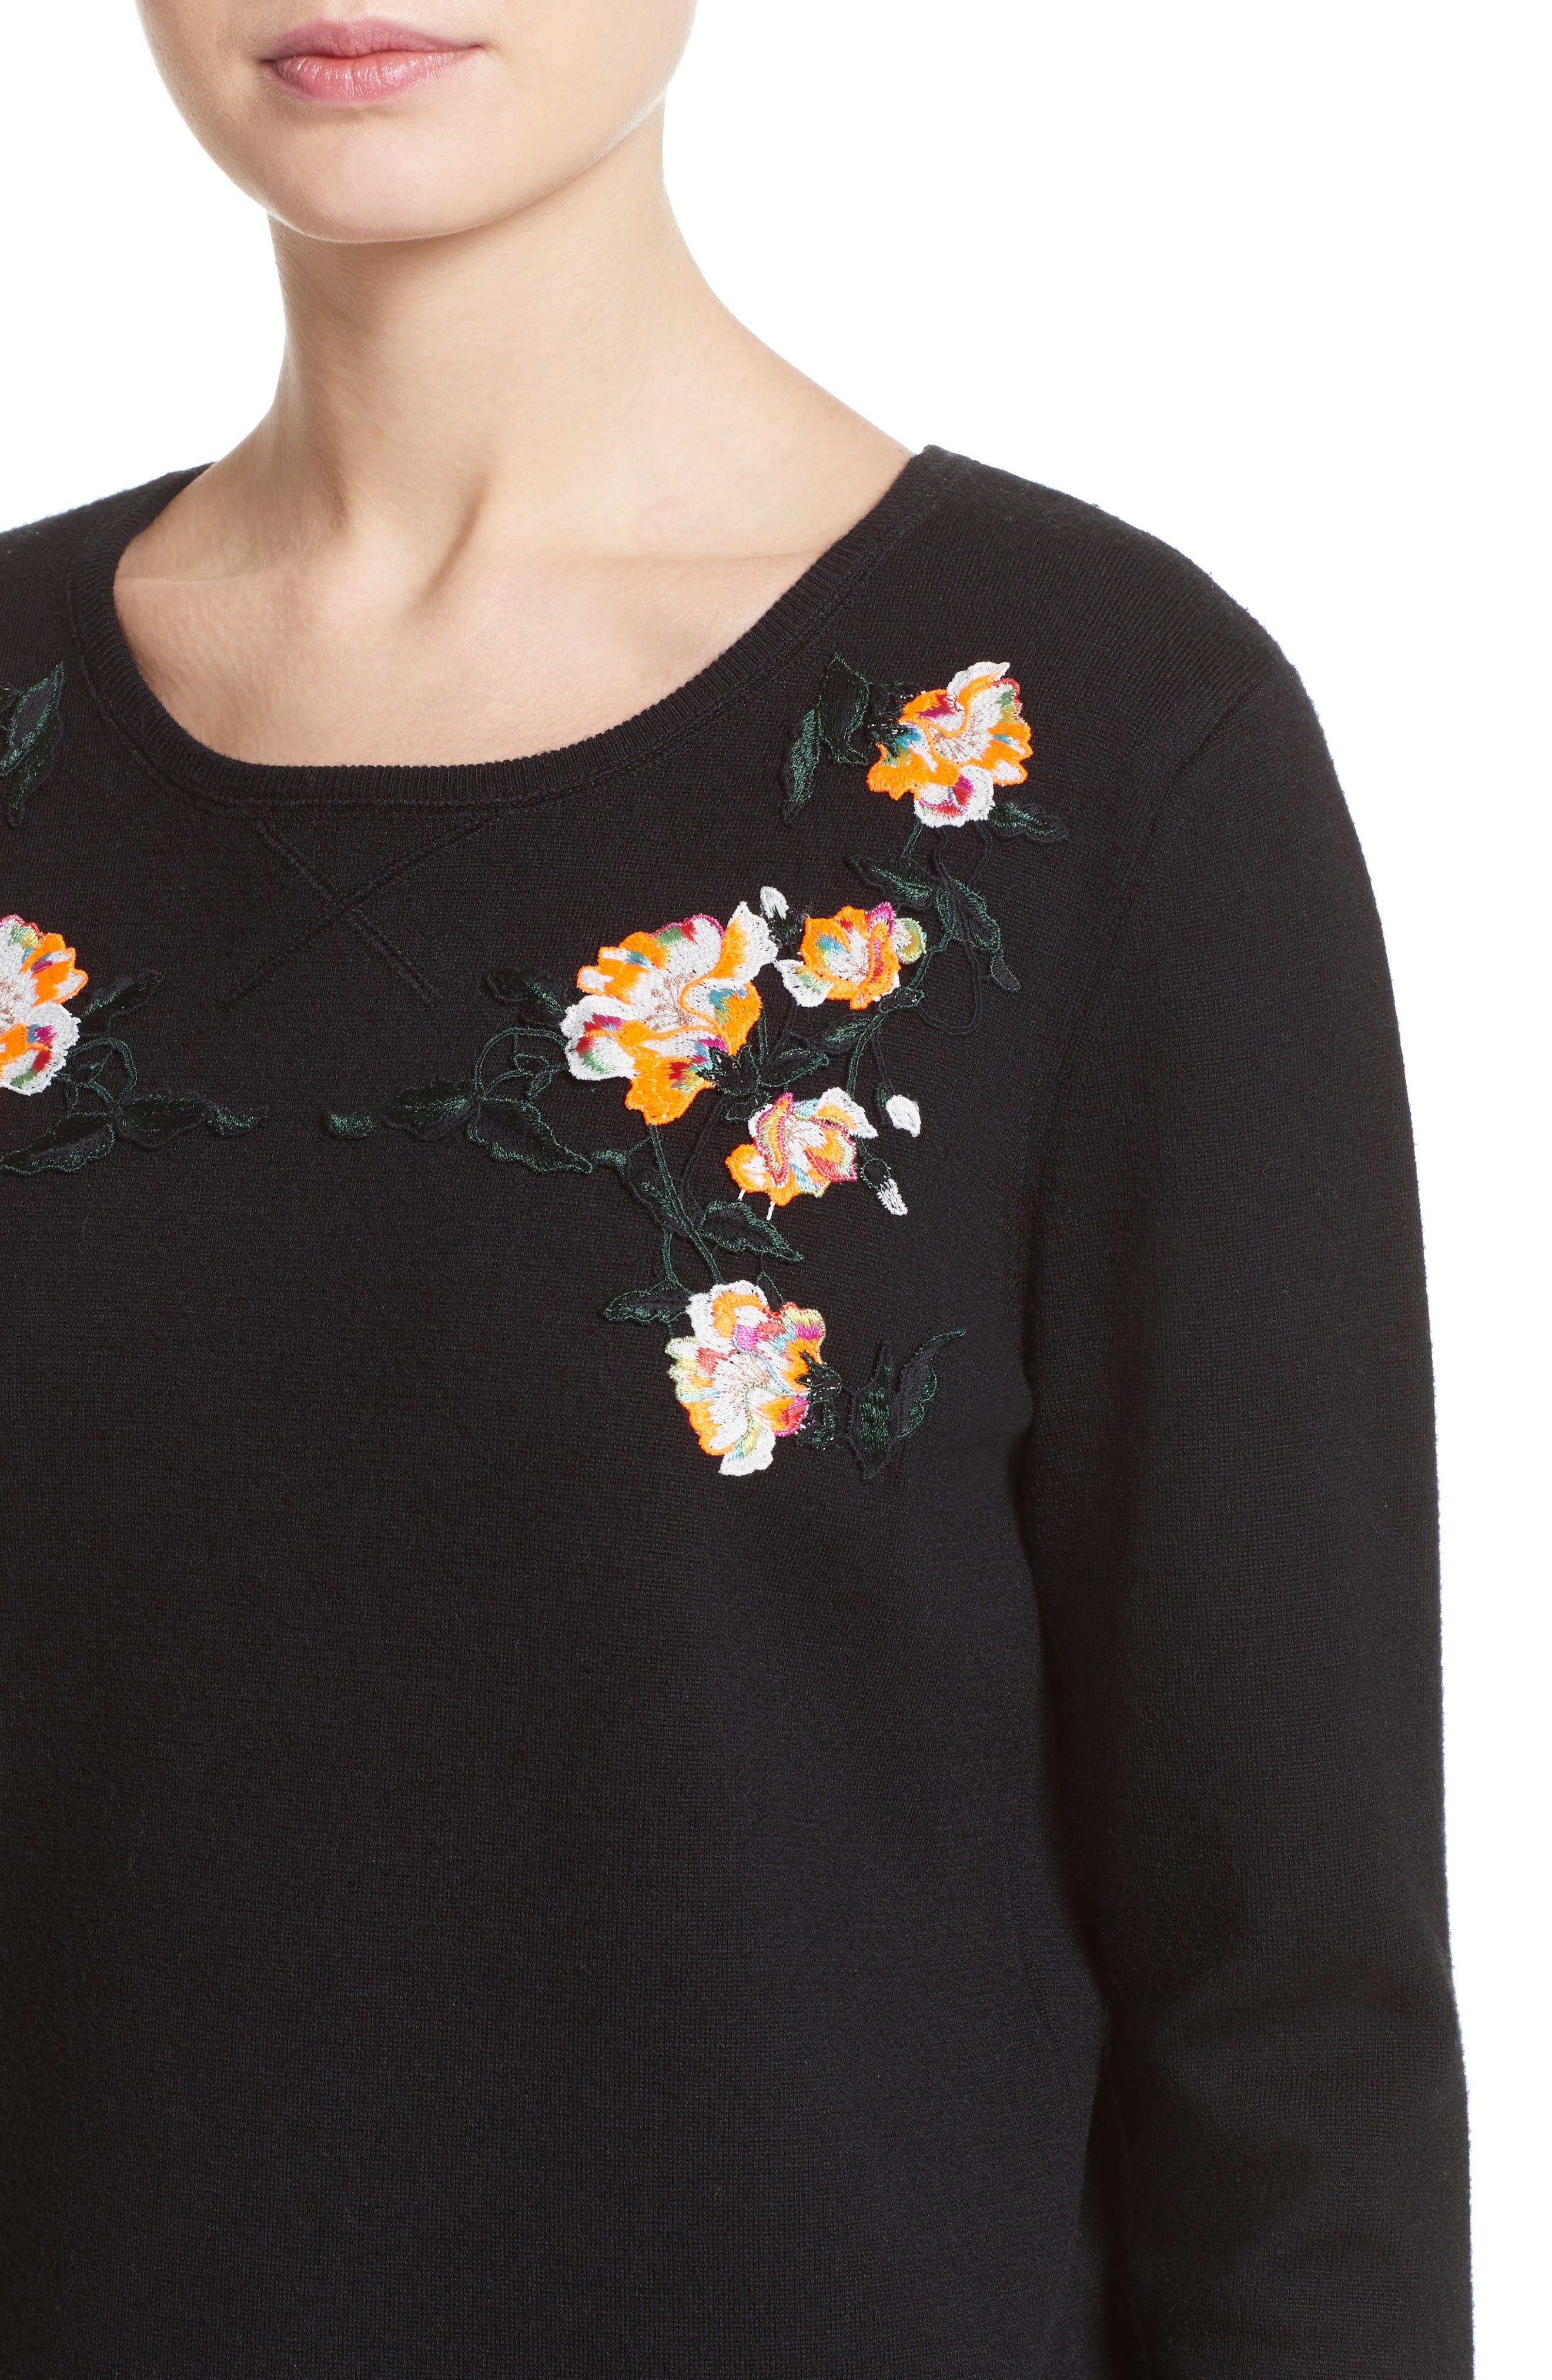 Floral Embroidered Merino Wool Blend Sweater,                             Alternate thumbnail 7, color,                             Black